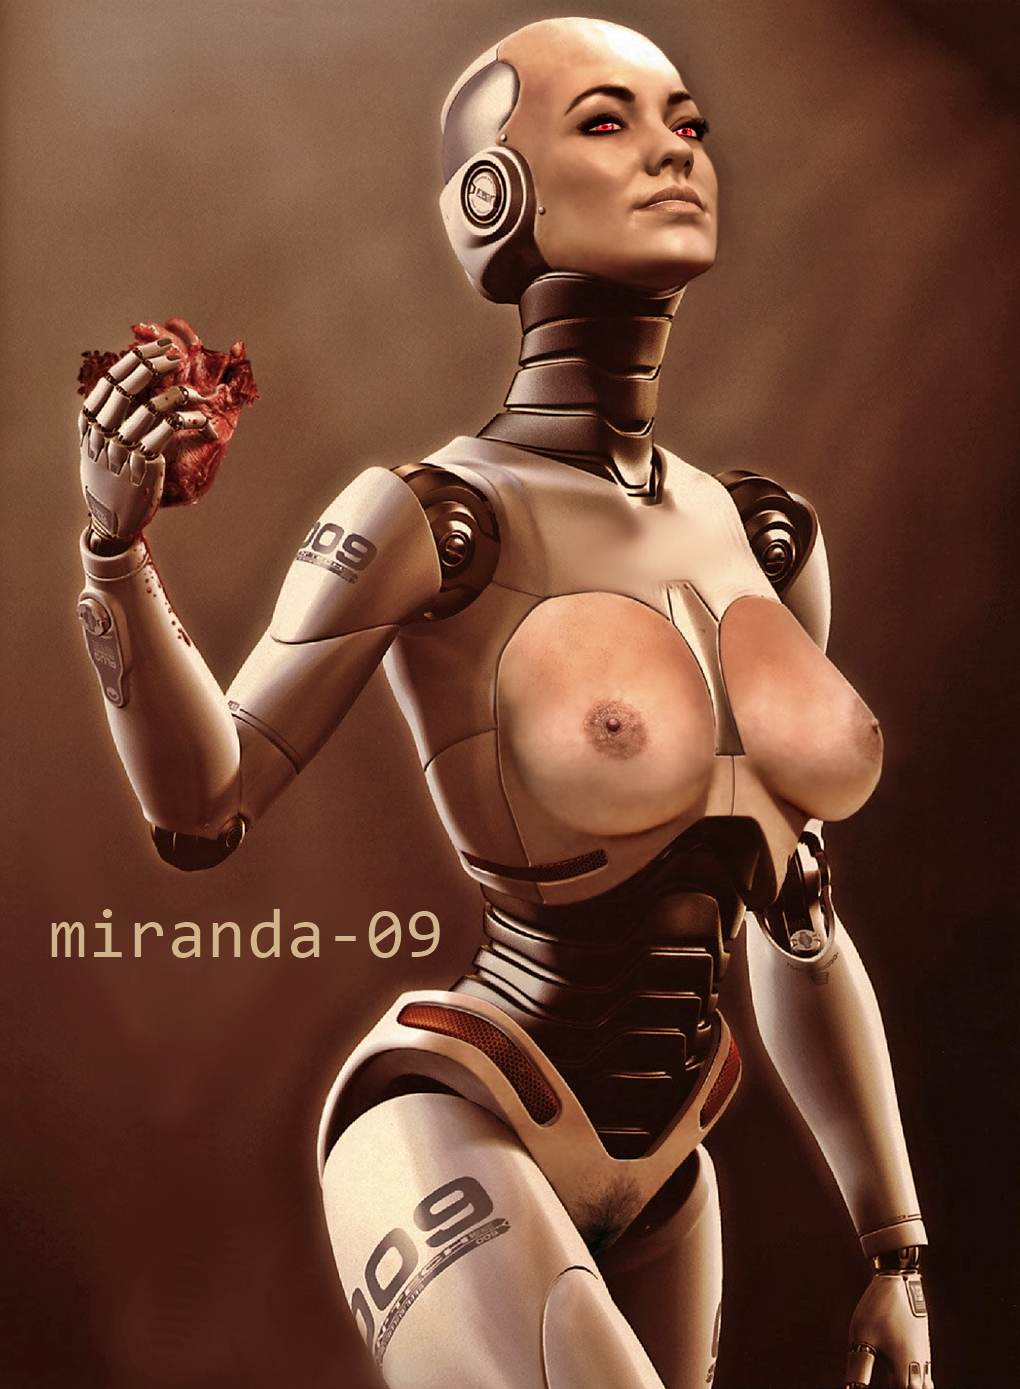 1girl 1girl 1girl 3d a.i breasts breasts breasts cyborg fake fake female_solo games hot mass_effect mass_effect_2 mass_effect_3 miranda_lawson nipples nude nude posing pussy pussy_hair red_eyes render robot sexy solo_female video_games xnalara xps